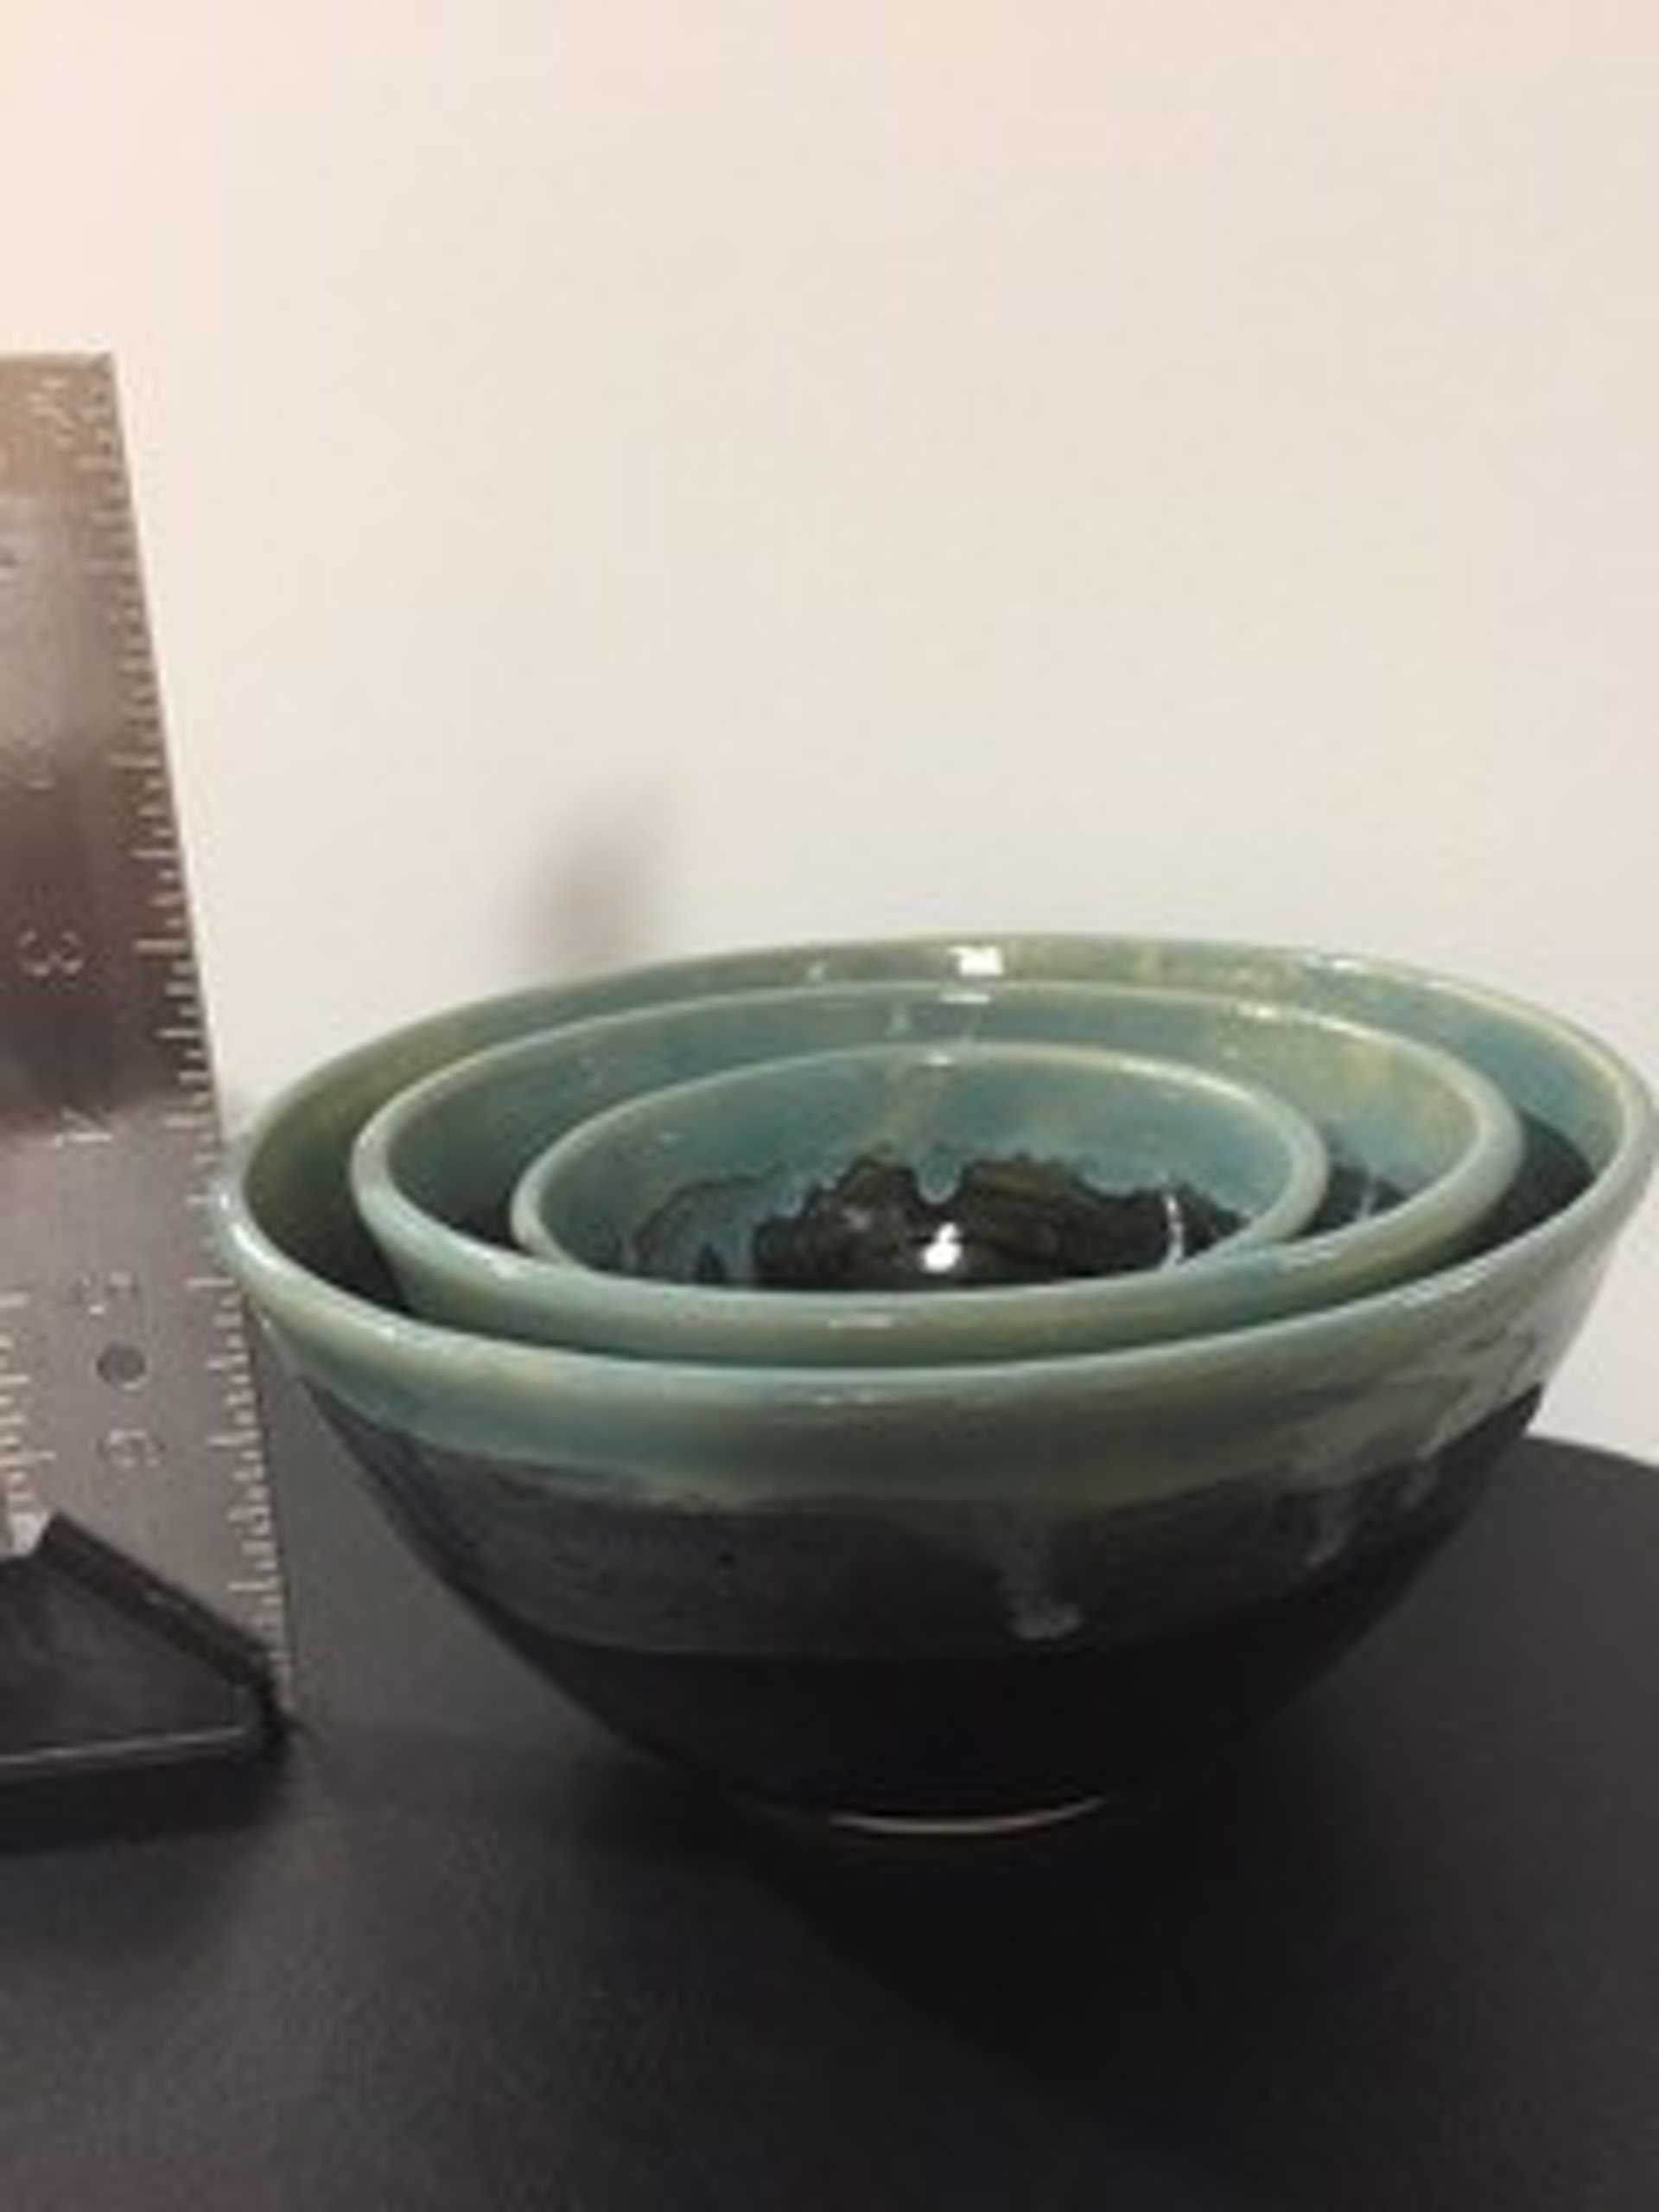 White and Teal Nesting Bowls by Teddie Ammon (Beaverton, OR)